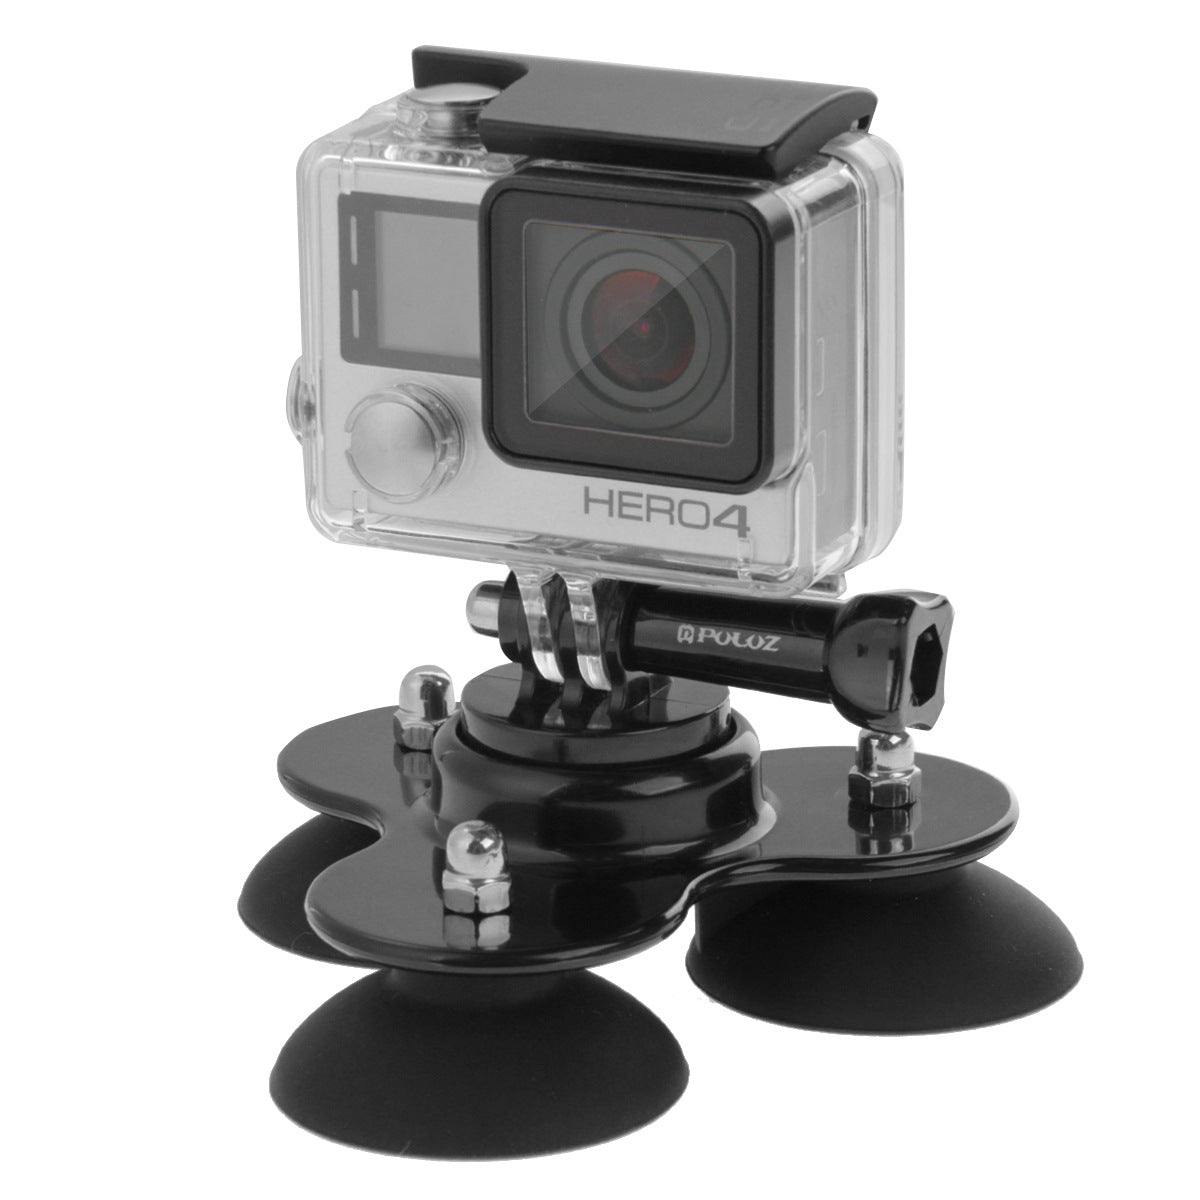 Mount Holder for GoPro HERO 6 5 4 3+ 3 2 SJCAM SJ4000 Triangle Screw Suction Cup Camera Stand Go Pro Accessories in Car black